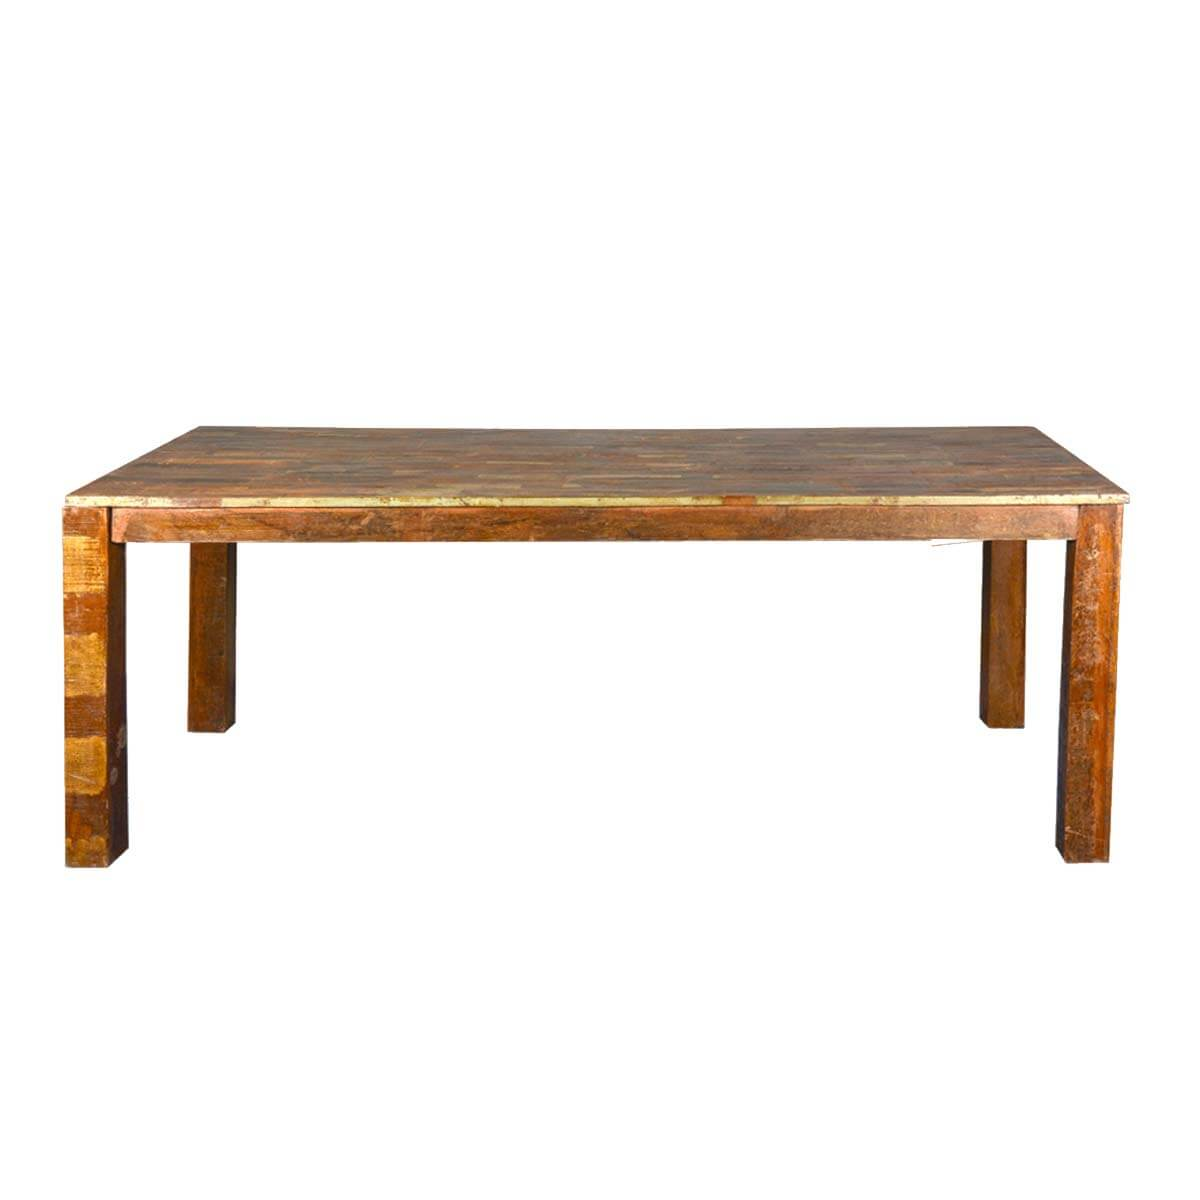 Rustic parquet top reclaimed wood dining table Rustic wood dining table